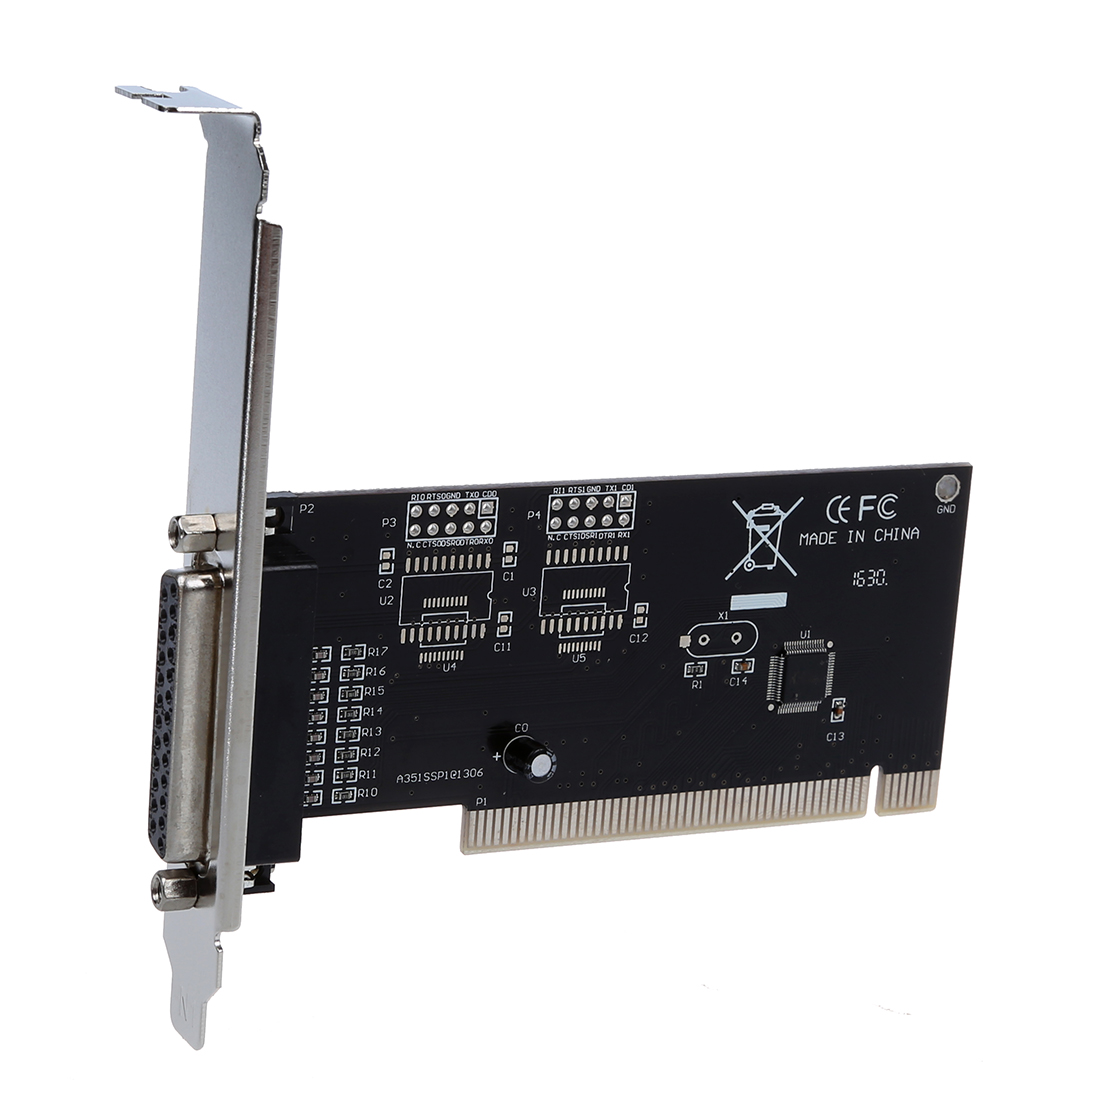 DB25 Parallel Port IEEE 1284 Printer PCI Controller Card Adapter